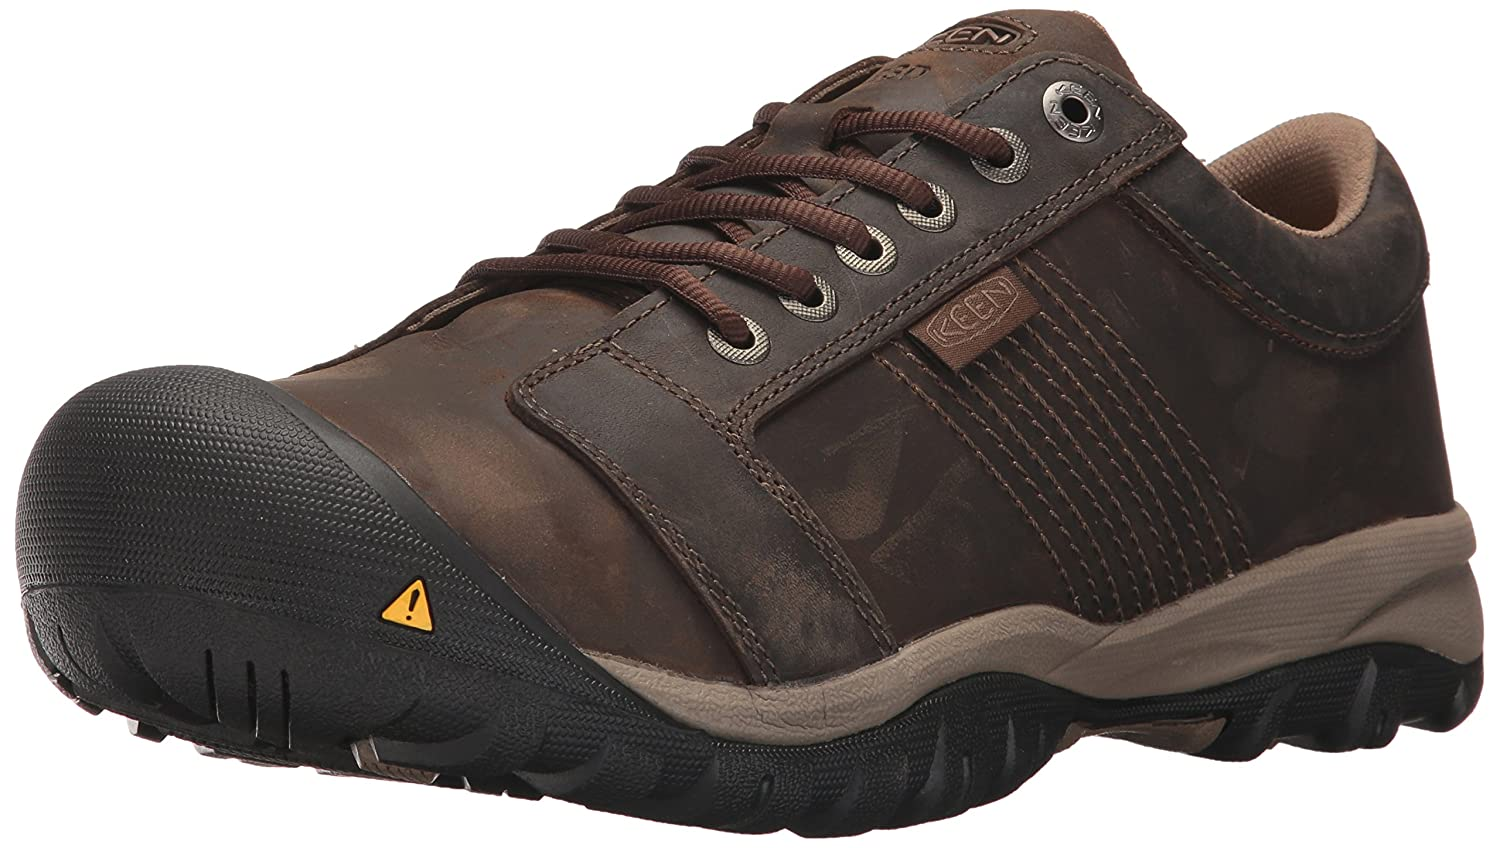 Keen Utility メンズ B01MT6IVQF 14 D(M) US|Cascade Brown Cascade Brown 14 D(M) US